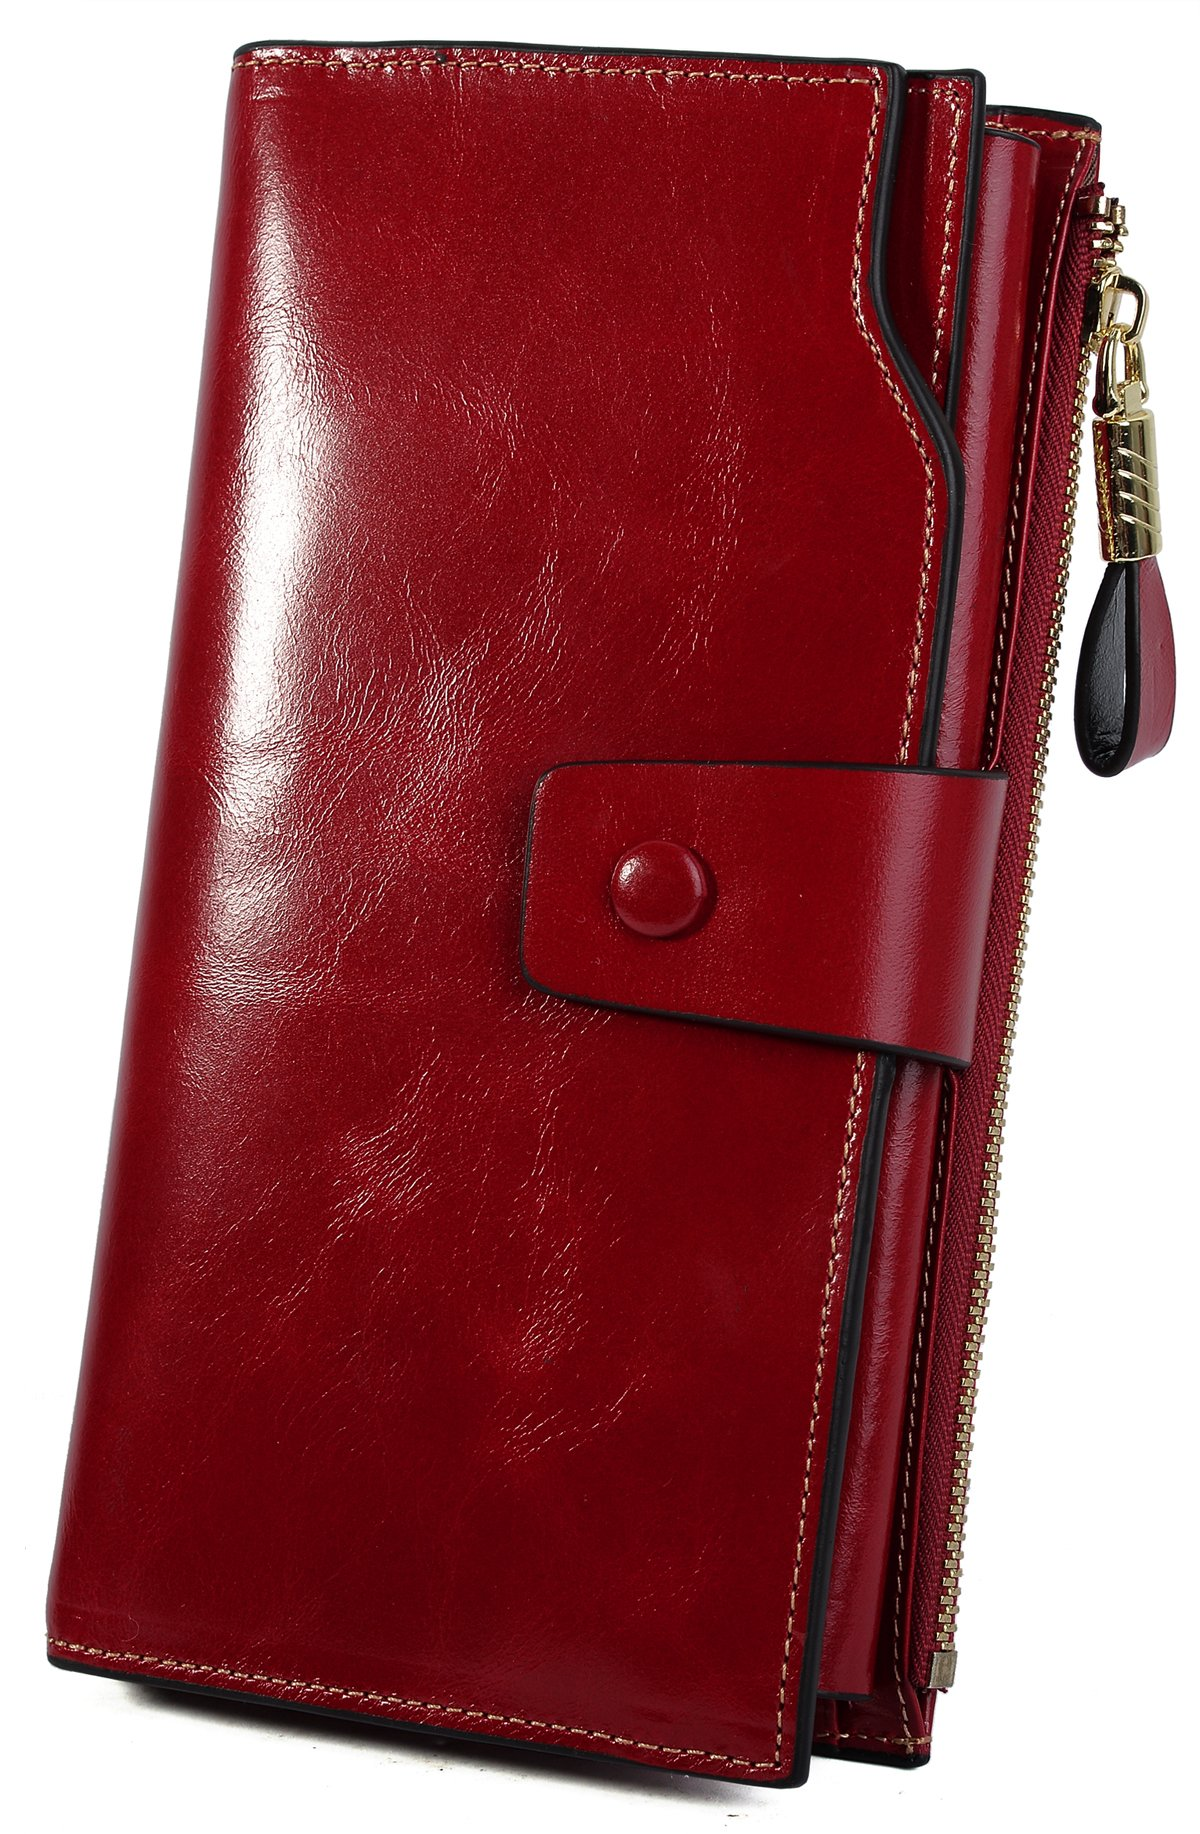 YALUXE Women's Wax Genuine Leather RFID Blocking Clutch Wallet Wallets for Women Red